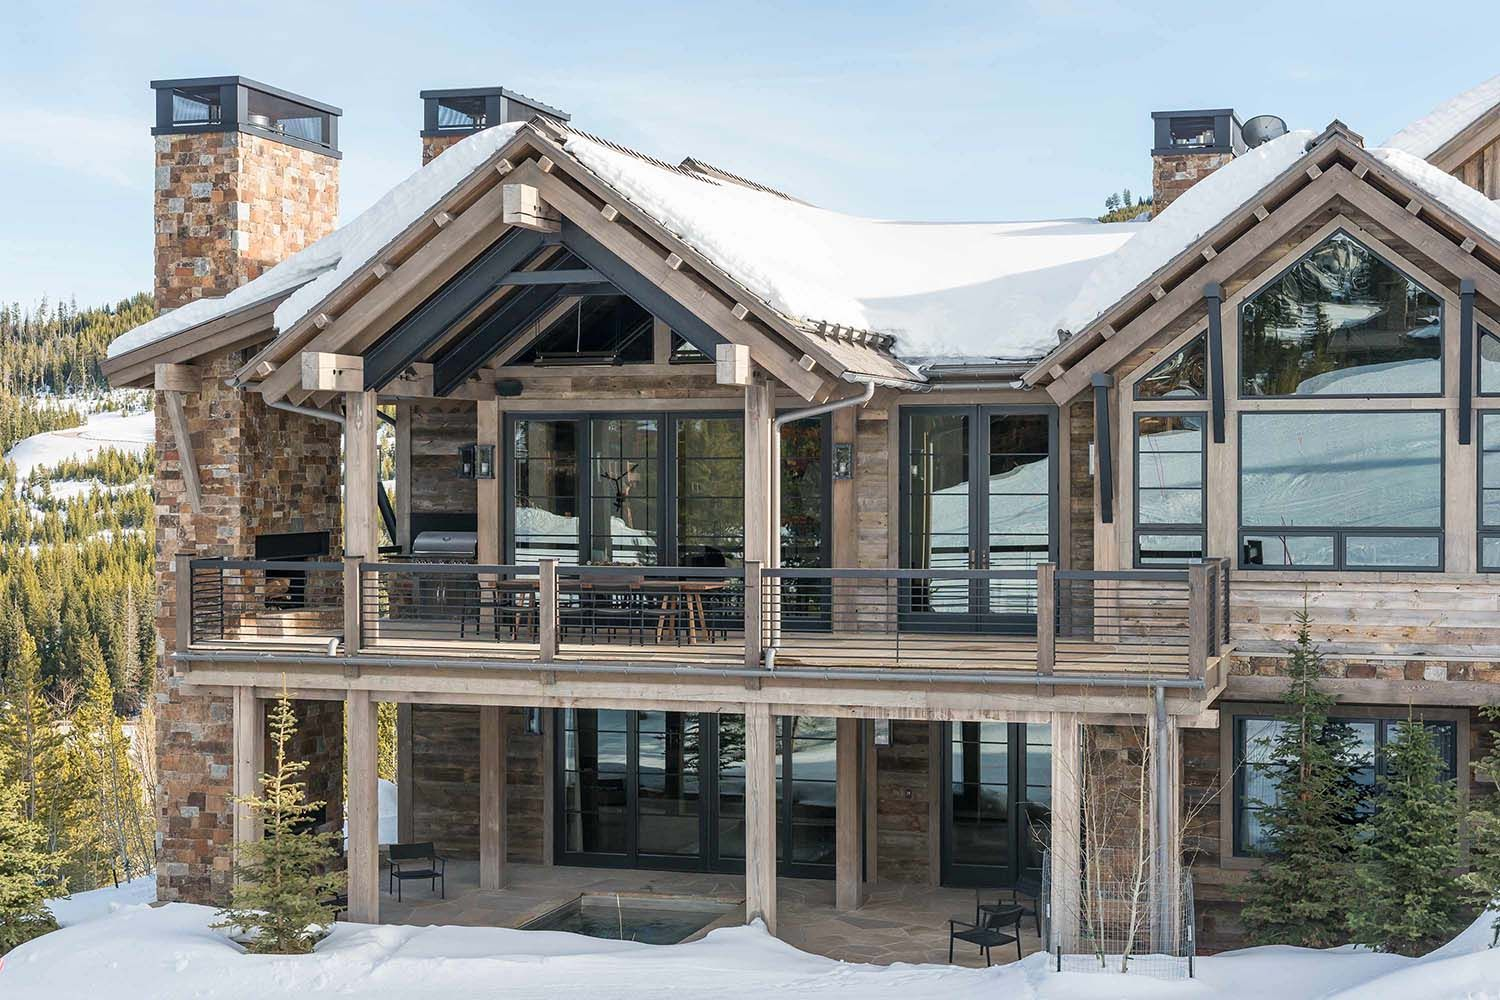 Hillside snowcrest the ultimate modern rustic ski chalet in montana